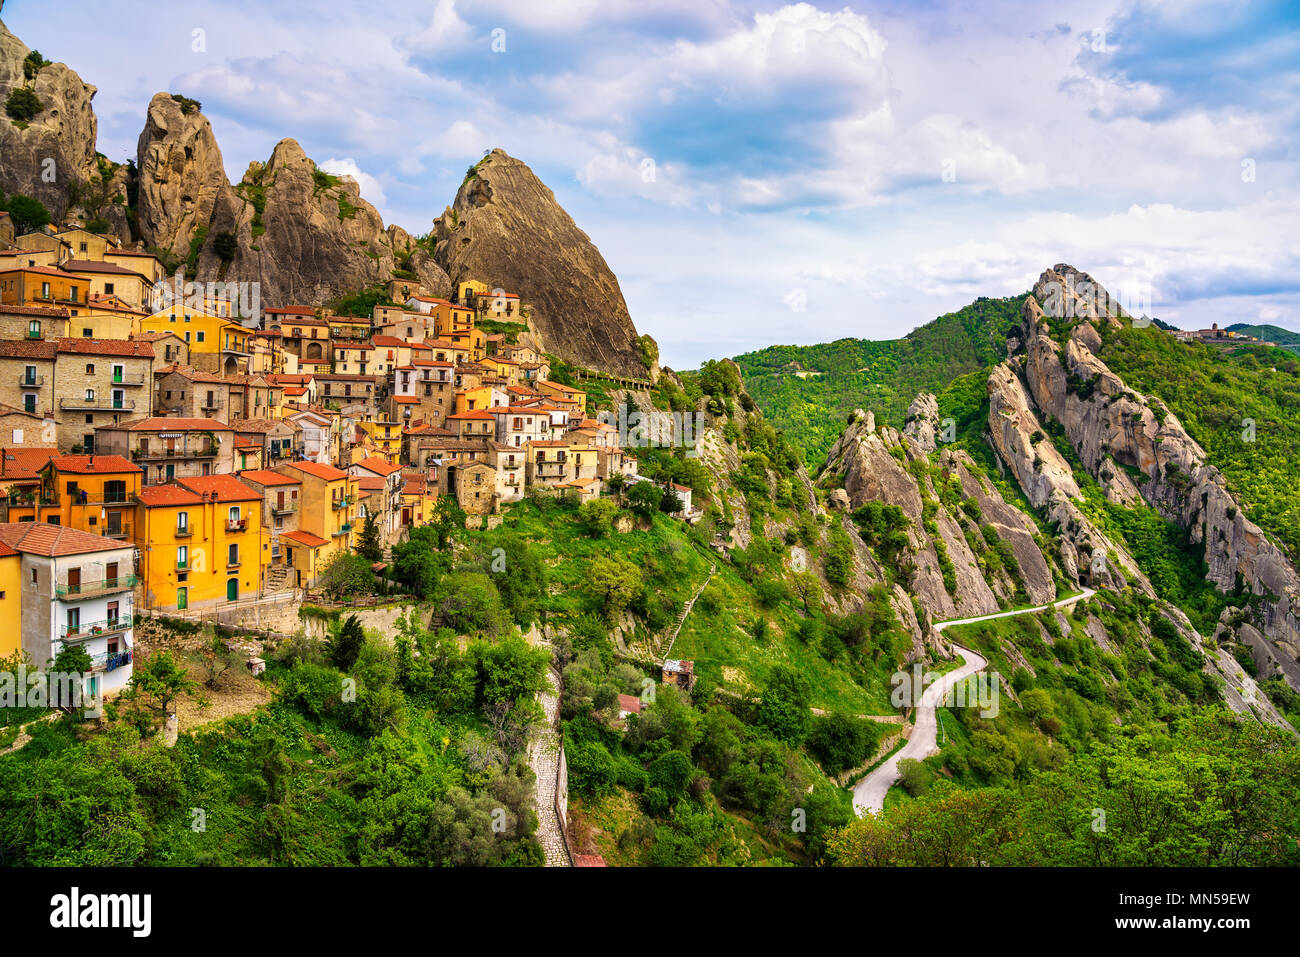 Castelmezzano village in Apennines Dolomiti Lucane. Basilicata, Italy. Stock Photo